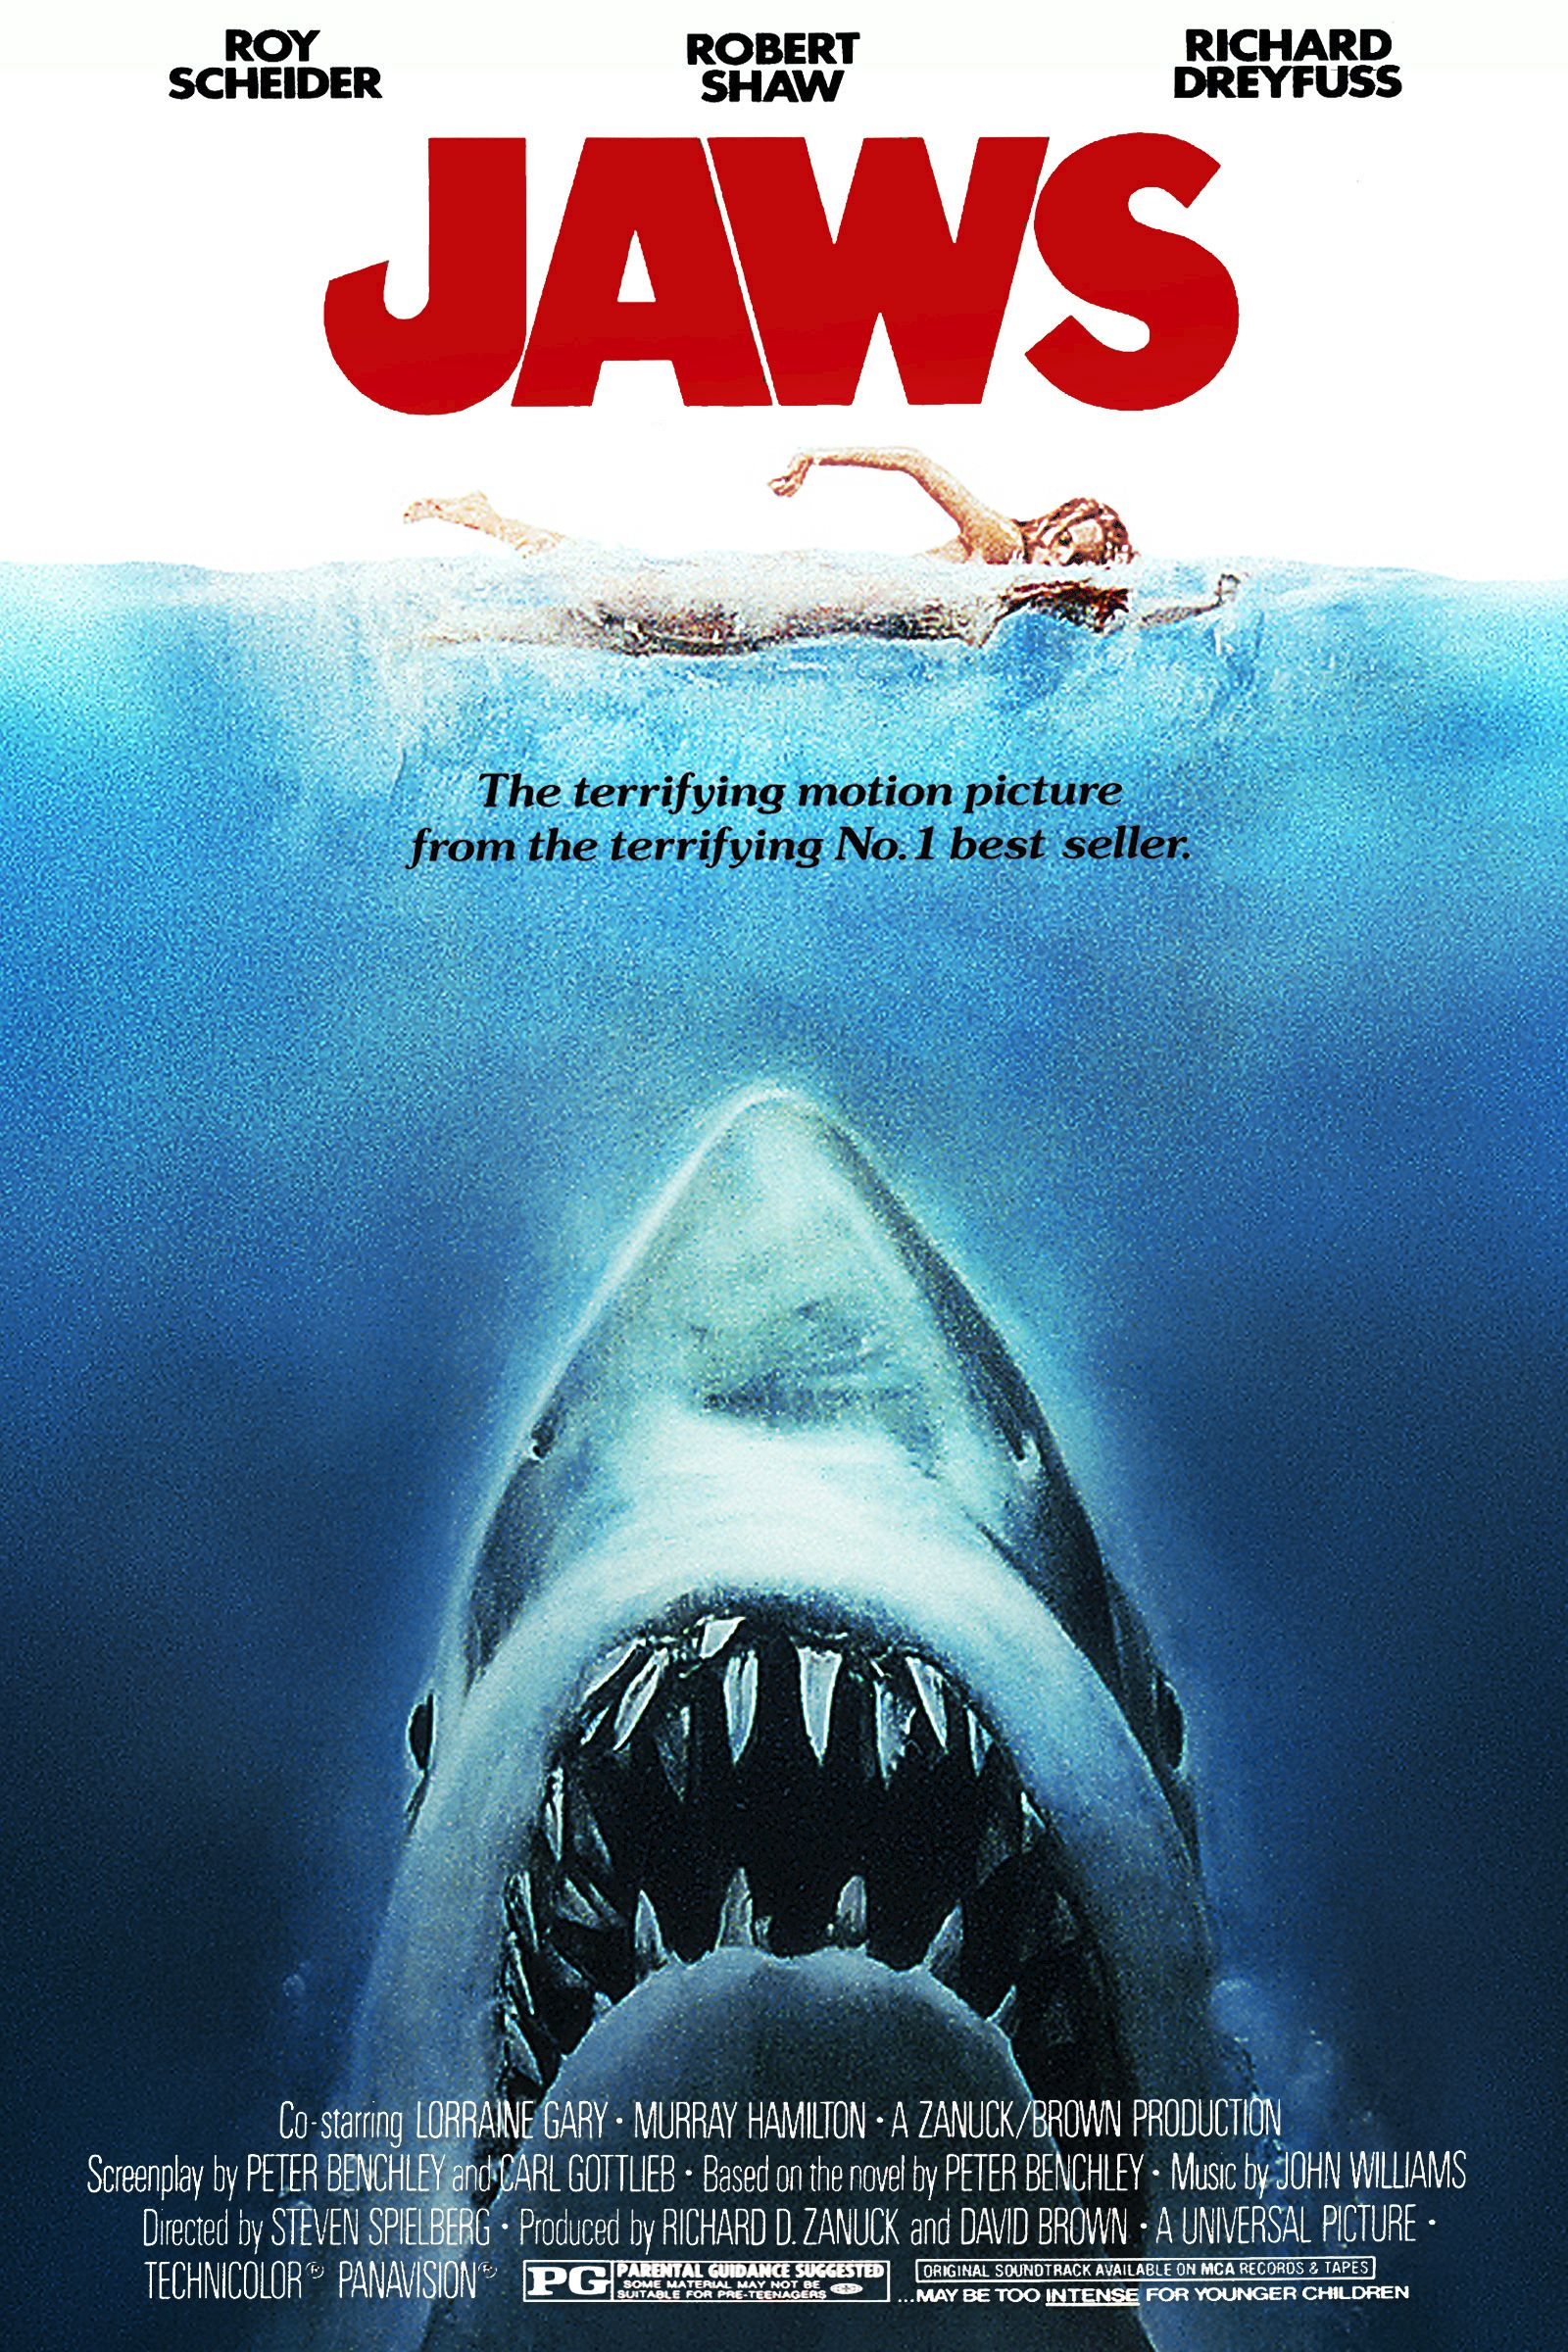 Jaws 1975 | Jaws movie poster, Classic movie posters, Movie ...